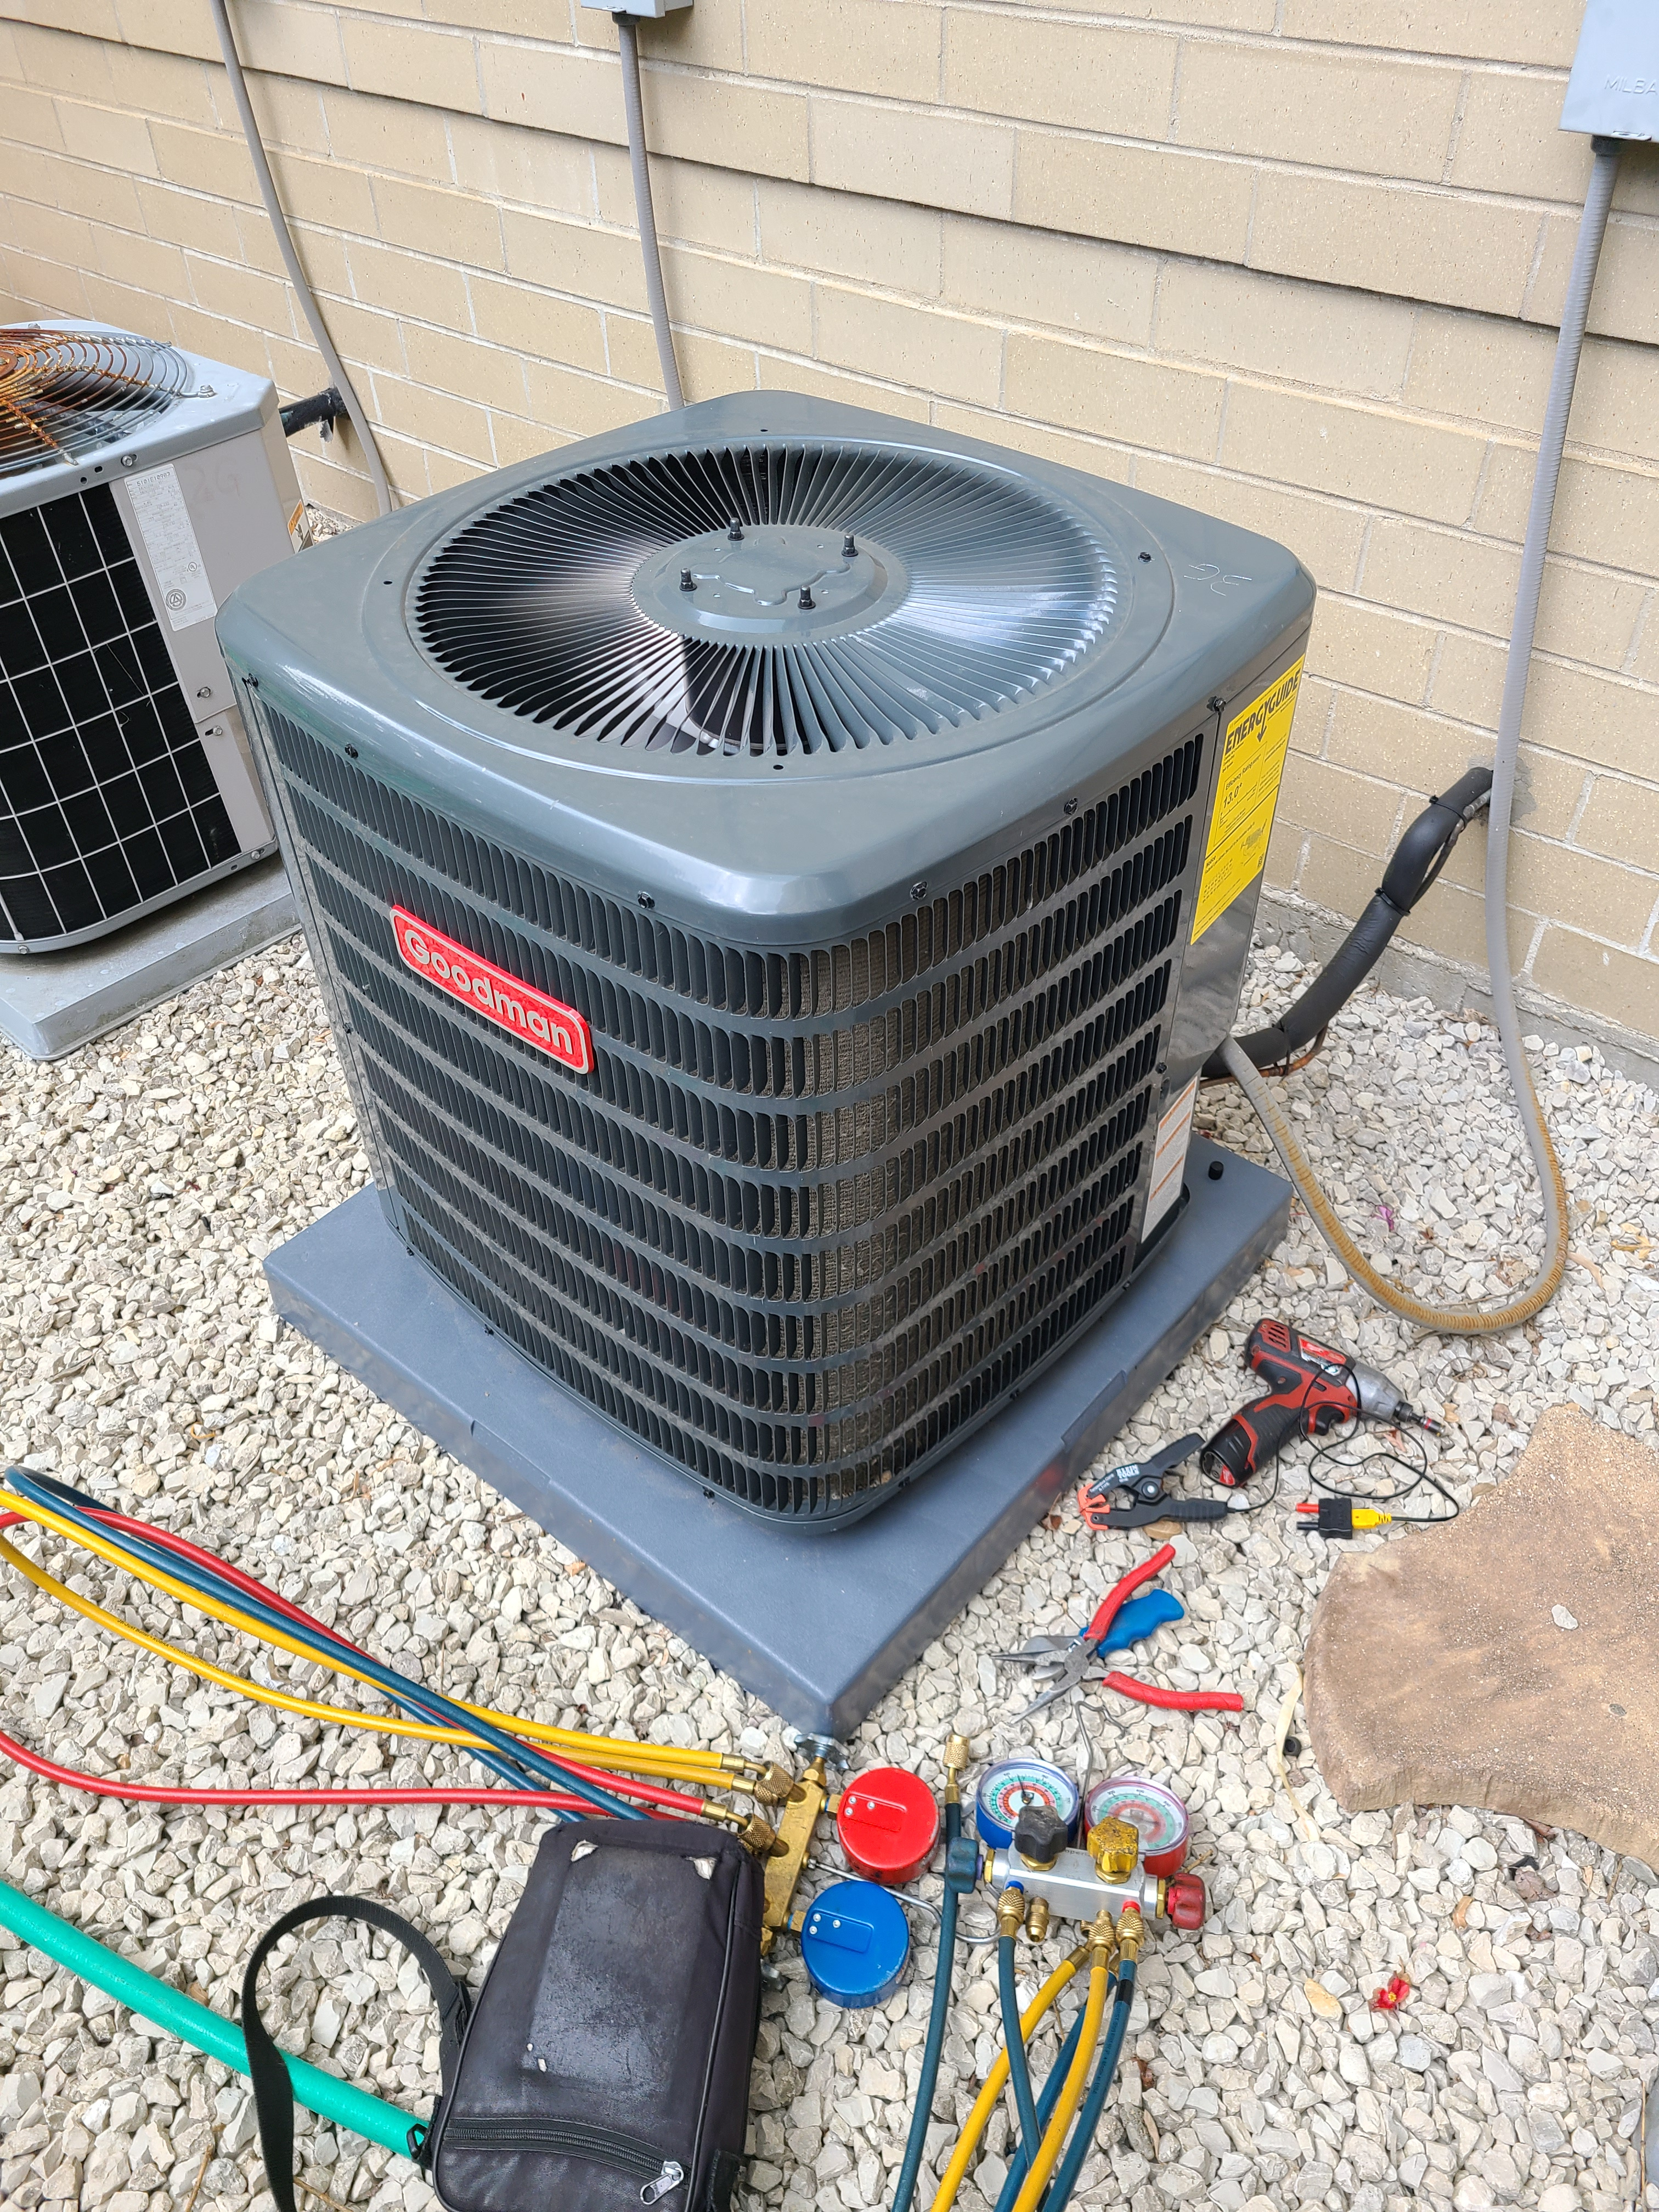 Goodman summer ac clean and check. System tuned up and ready for summer.